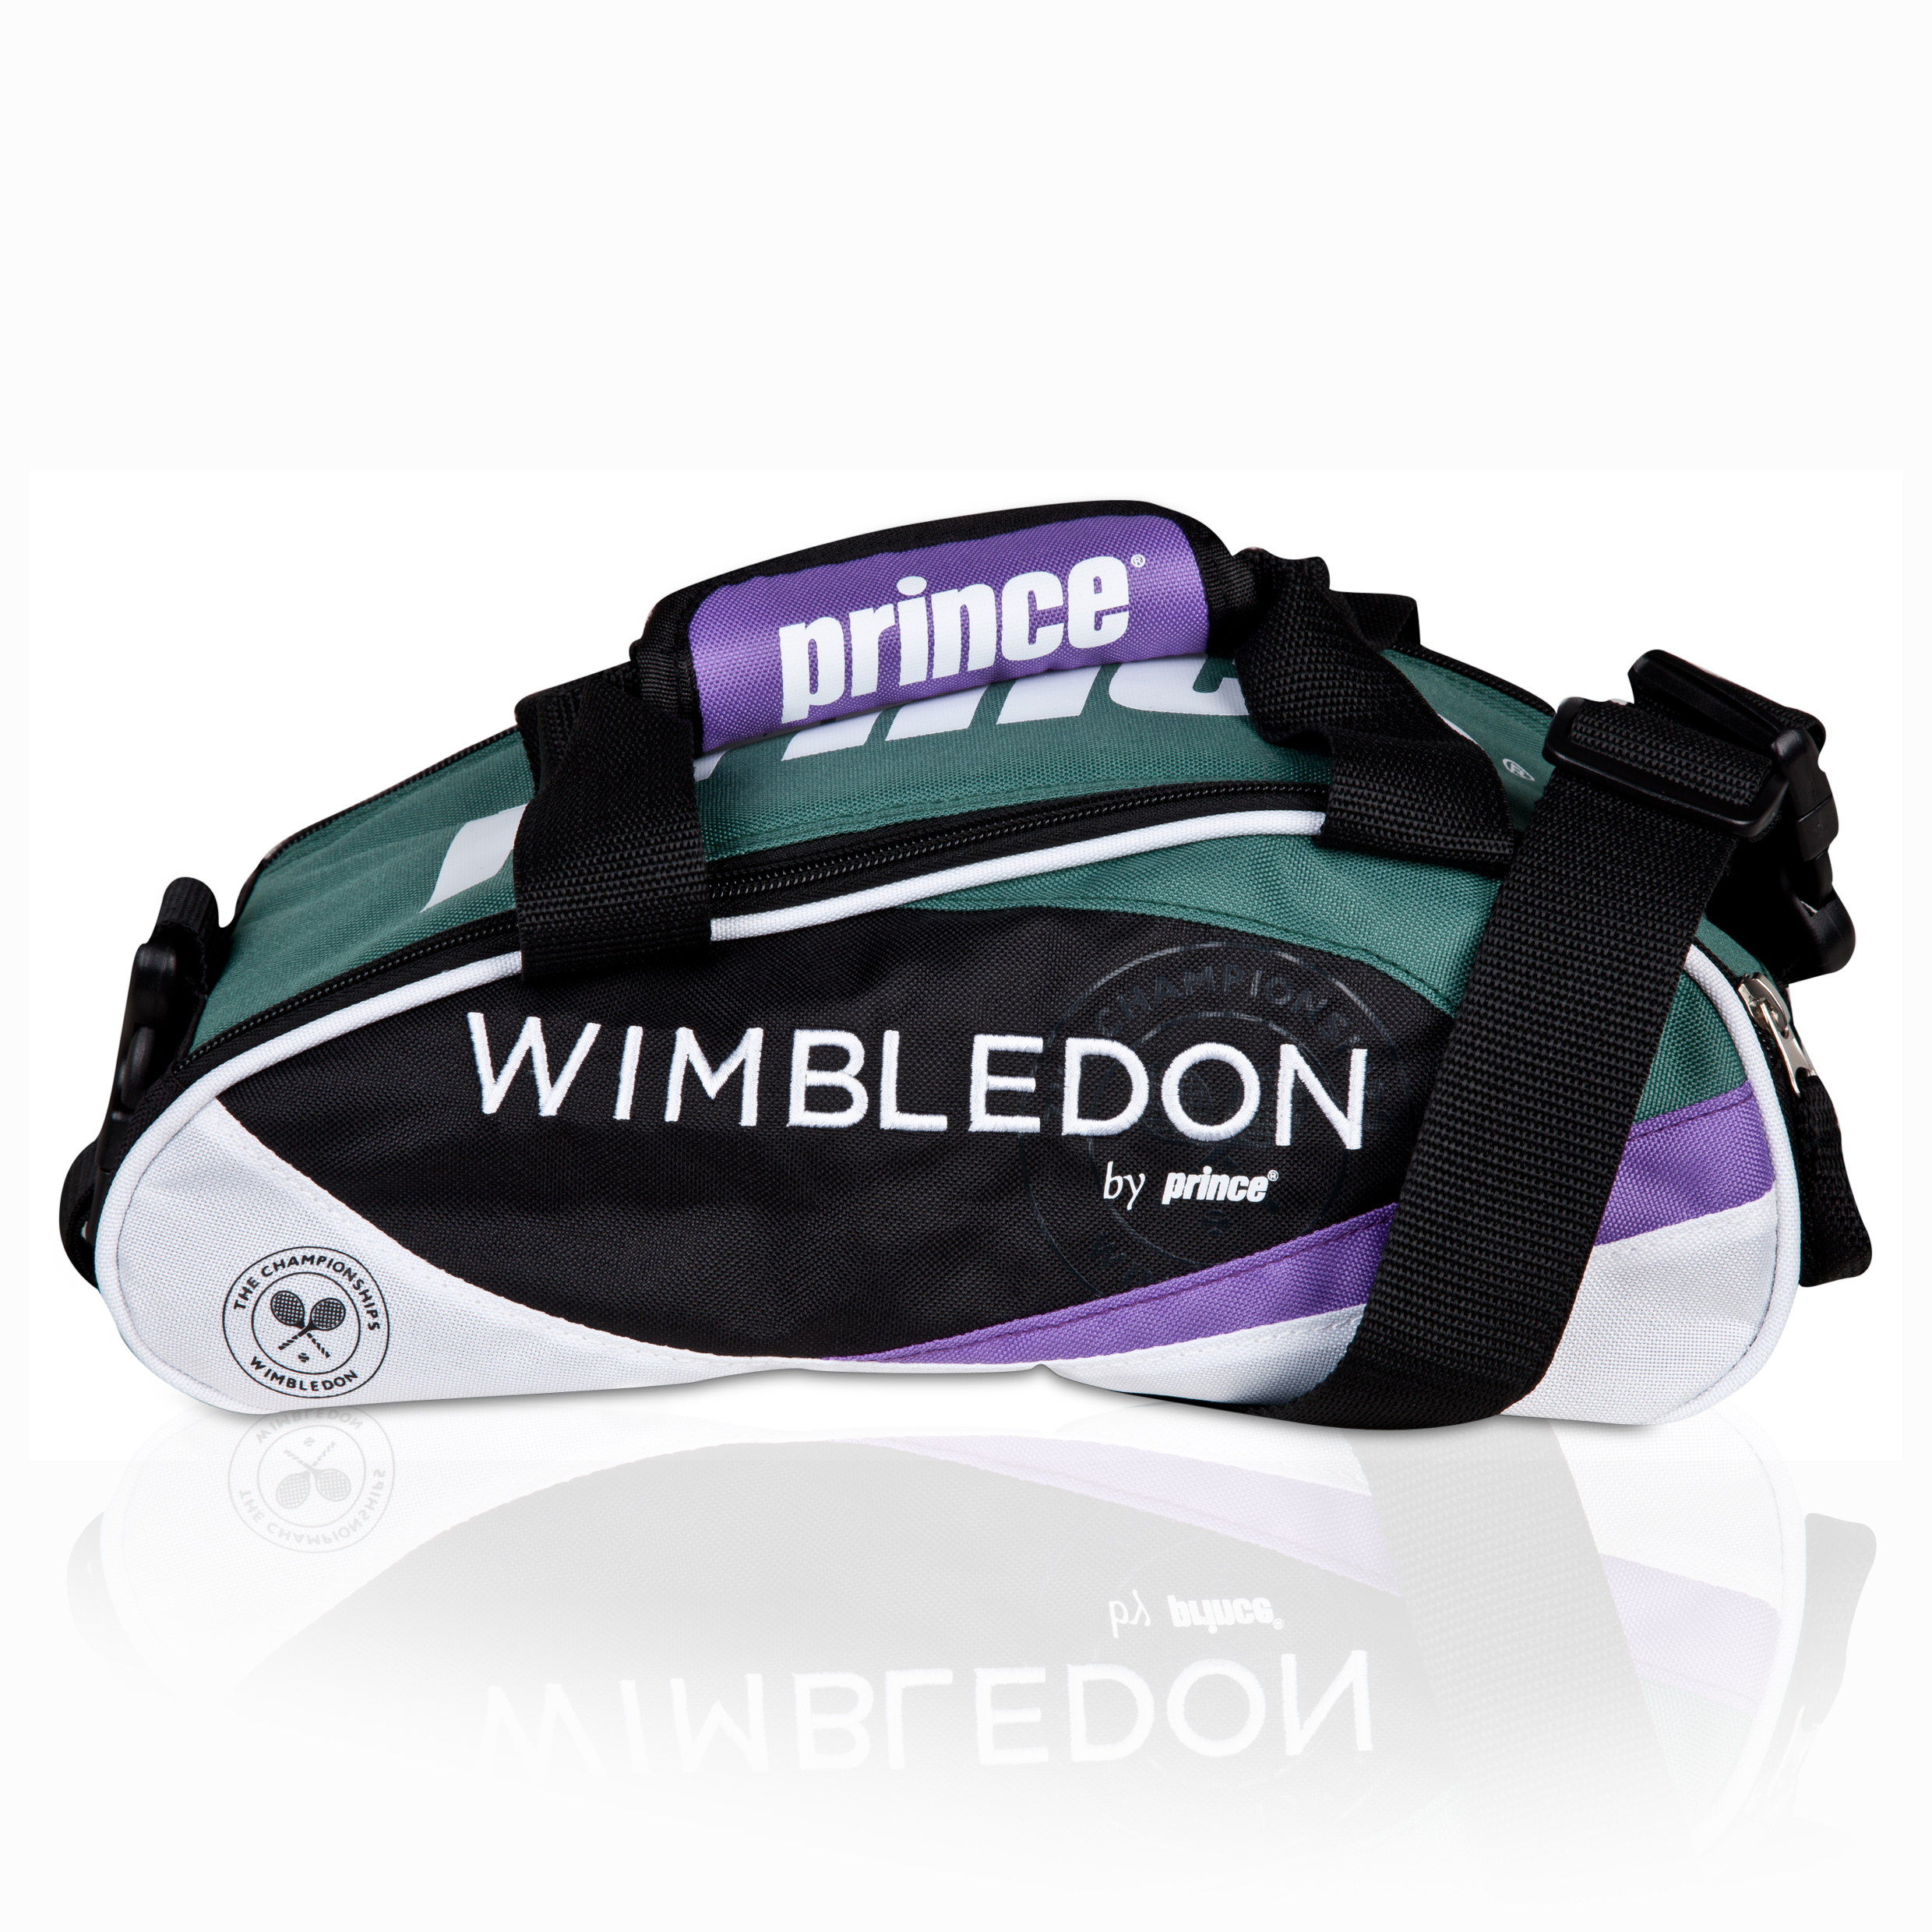 Wimbledon By Prince Grass Court Collection Cooler